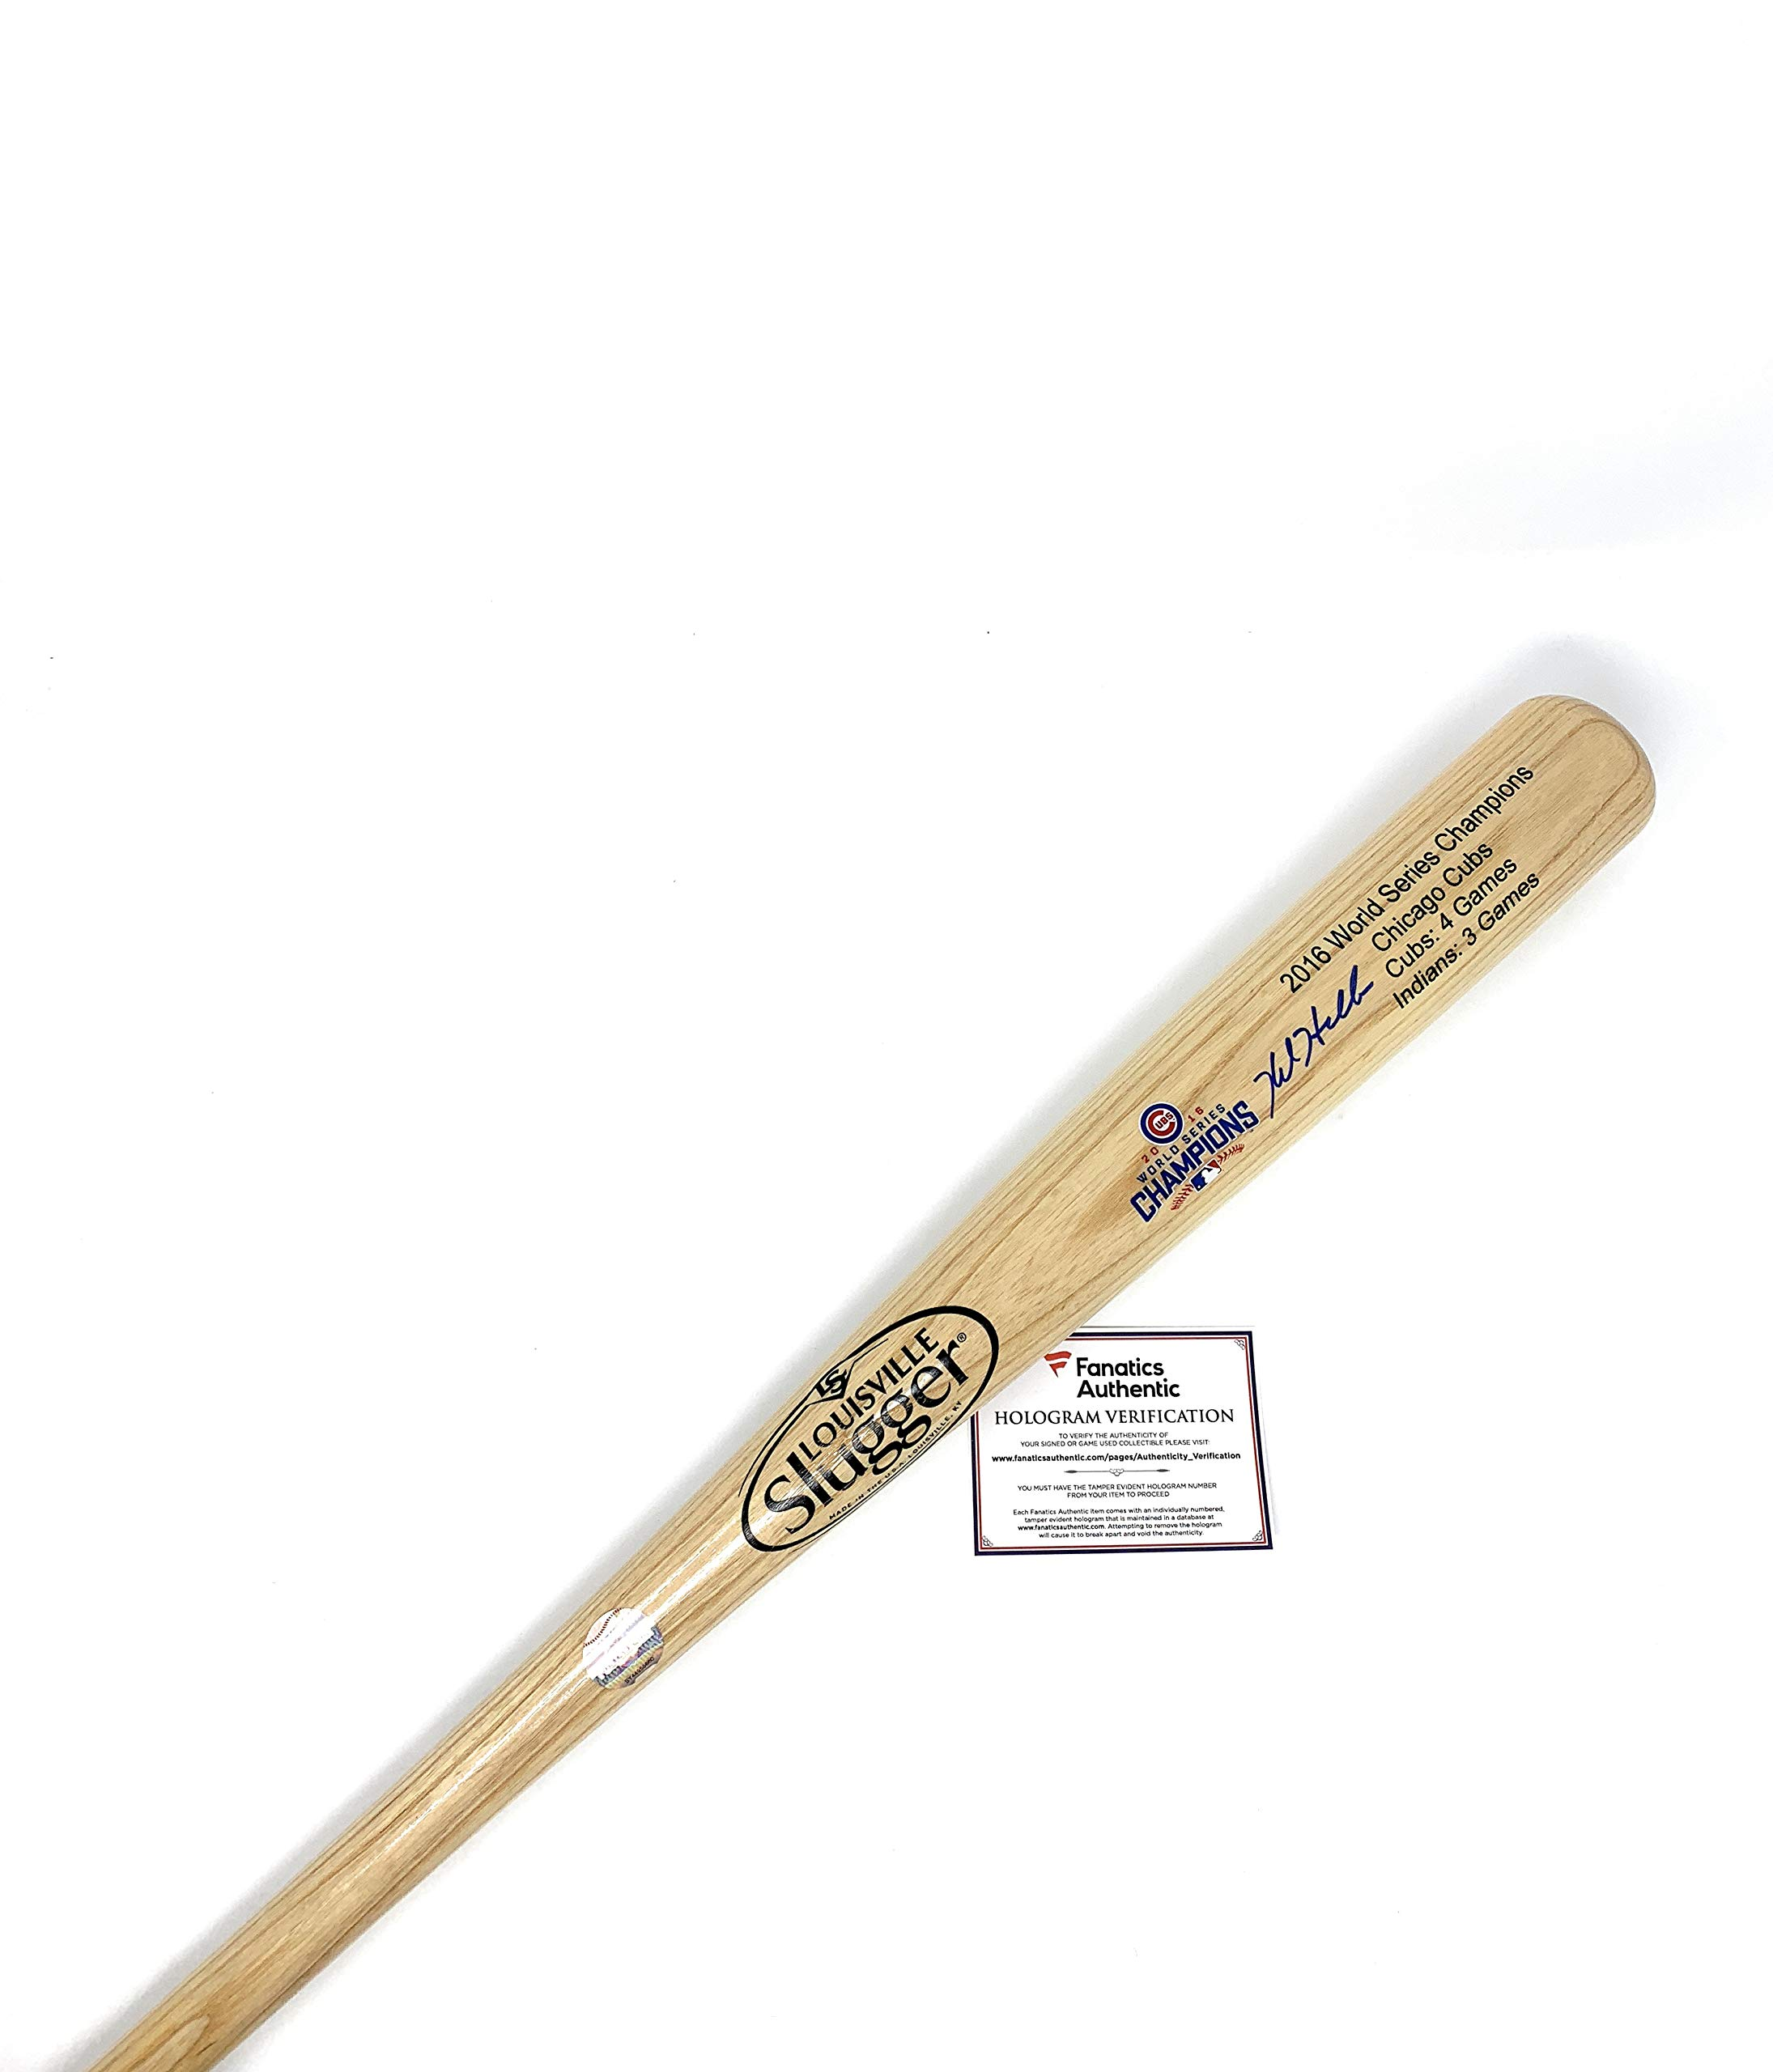 Kyle Hendricks Chicago Cubs Signed Autograph Baseball Bat Limited Edition World Series Blonde Fanatics Authentic Certified